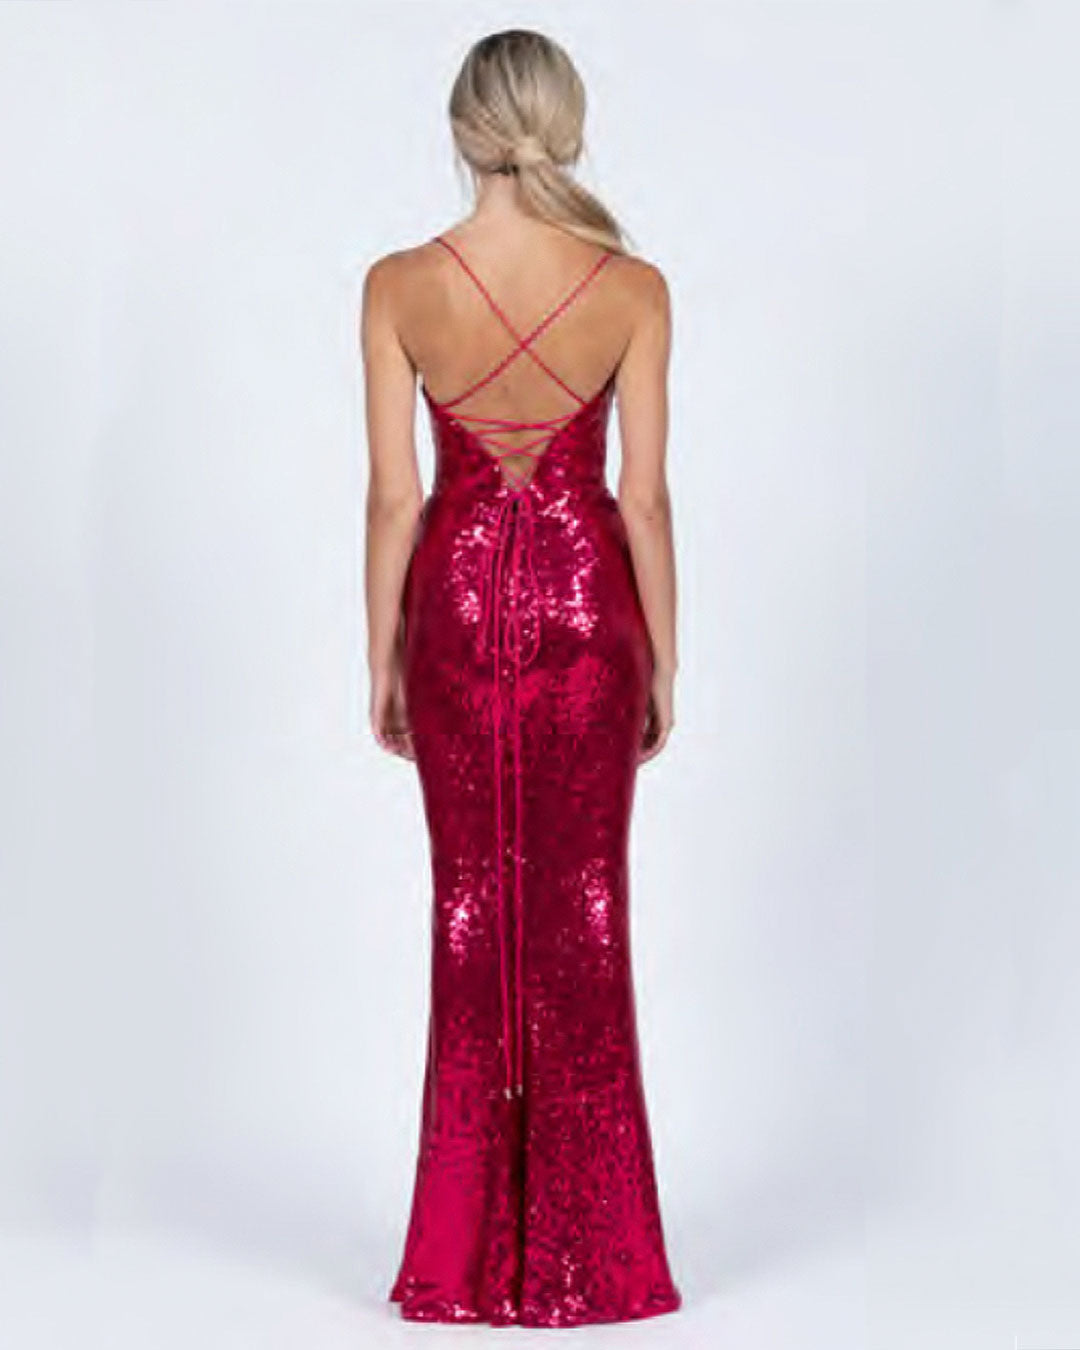 Stephanie Sequin Gown - Hot Pink